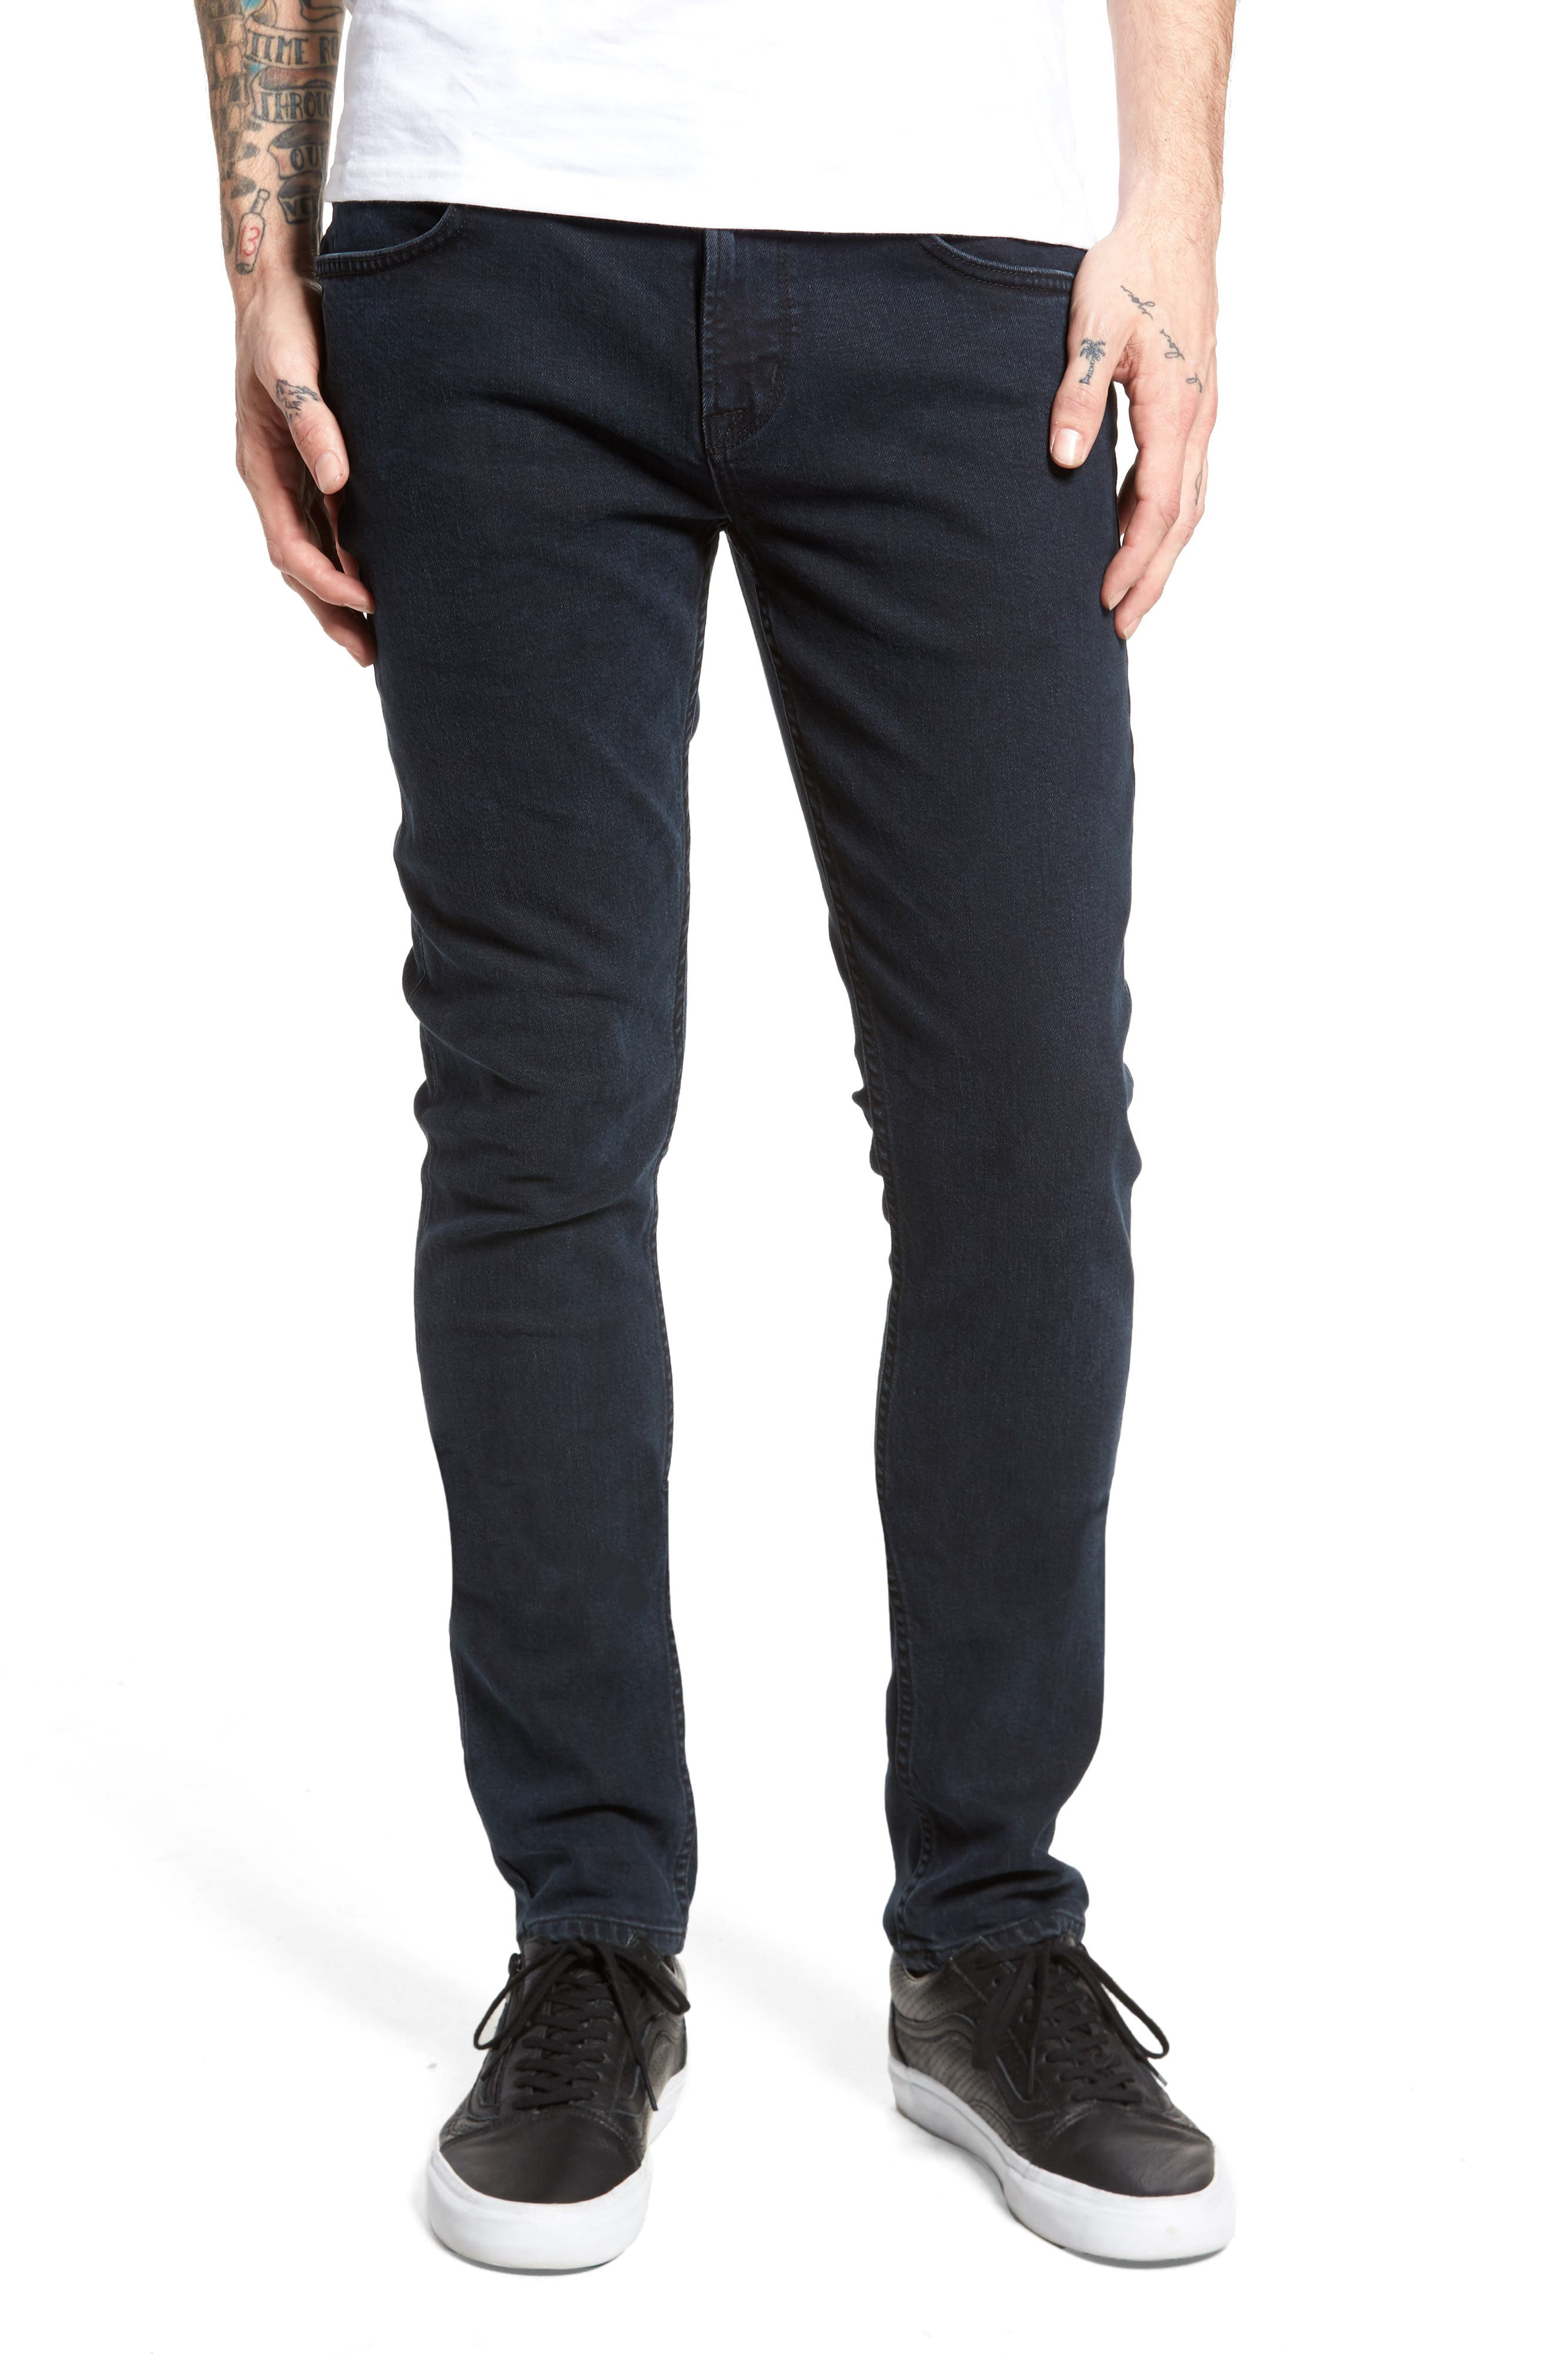 Axl Skinny Fit Jeans,                             Main thumbnail 1, color,                             Sight Unseen